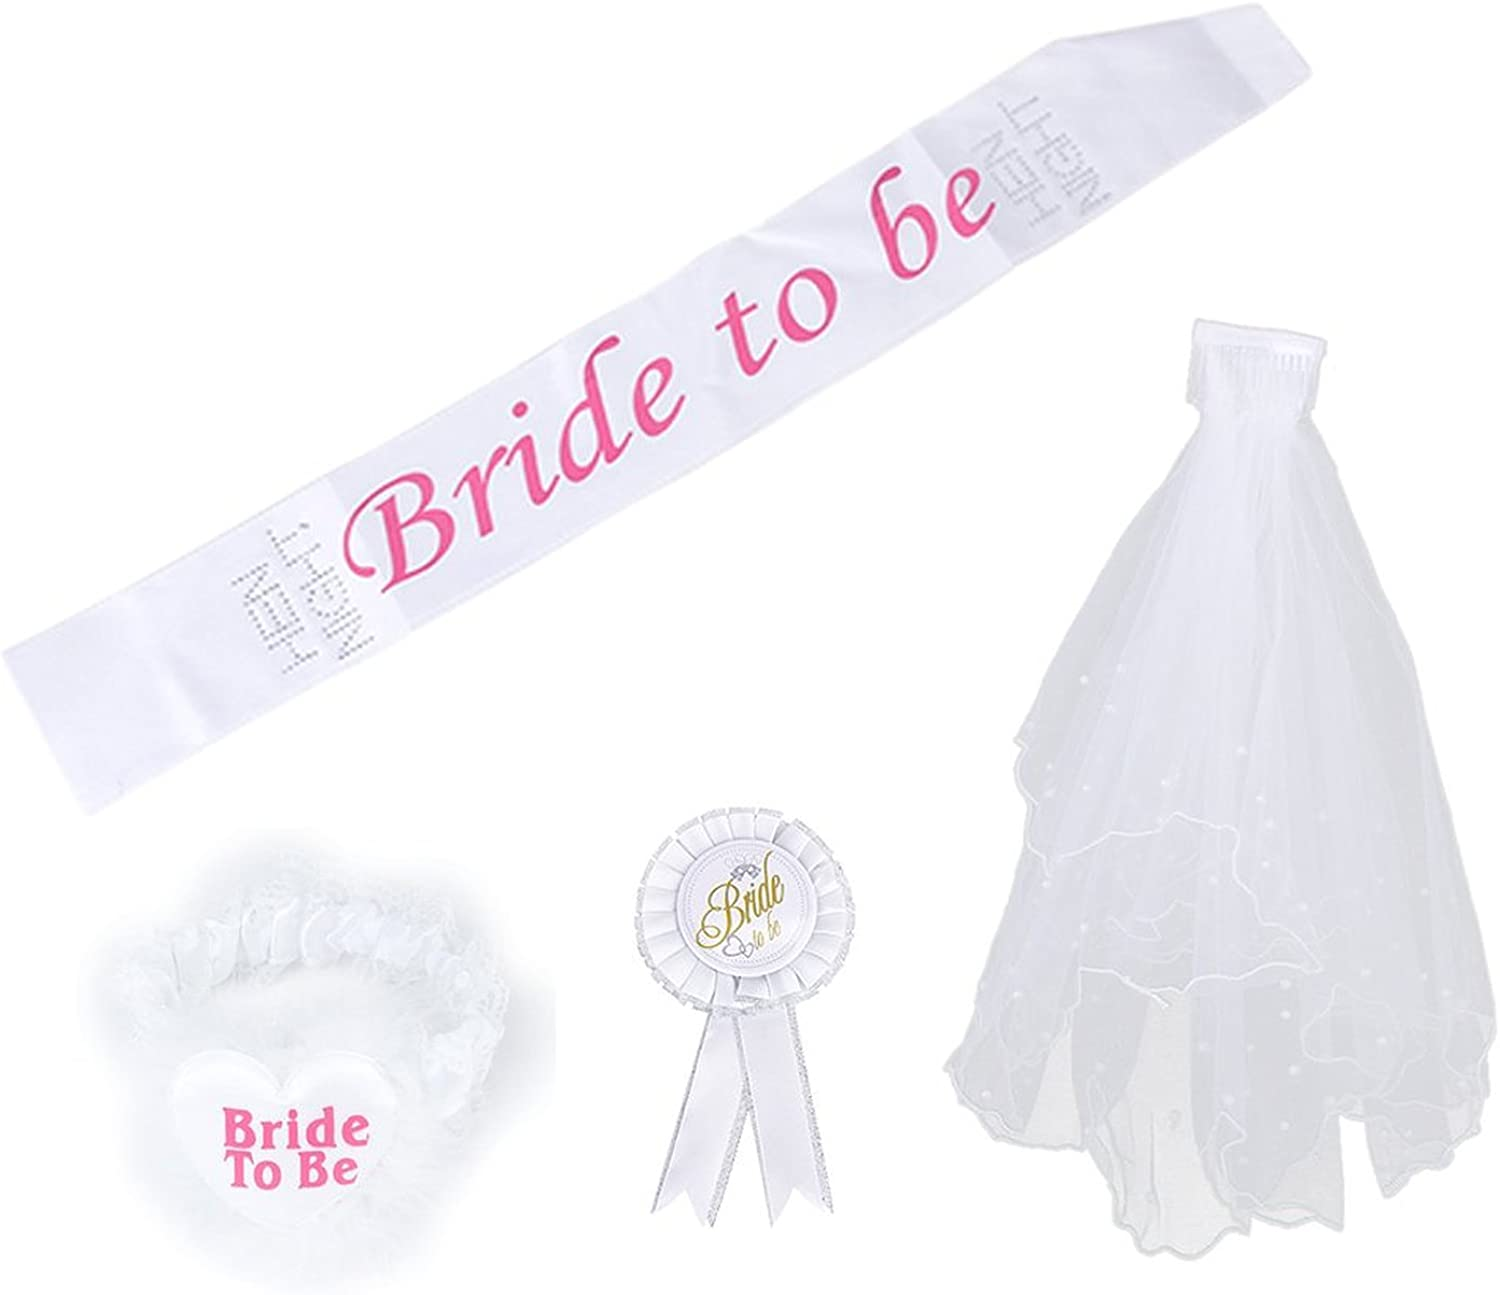 New Ladies Hen Party Wedding Bride To Be Tiara With White Veil Fancy Dress Party